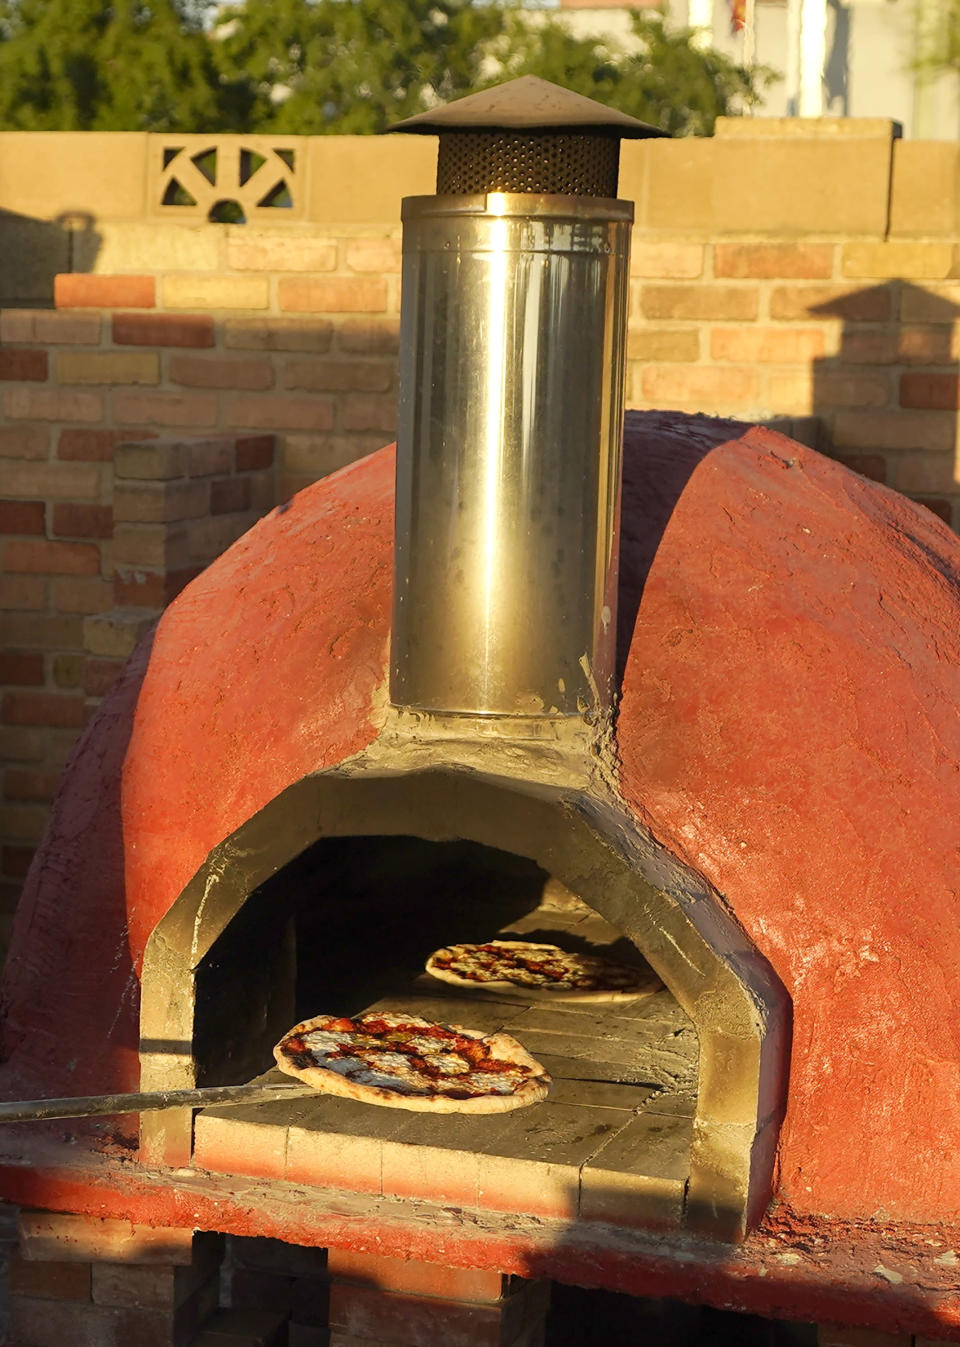 Chef Jose Hernandez checks on several pizzas in a clay oven in a makeshift backyard pizza kitchen on April 3, 2021, in Scottsdale, Ariz. Beaten down by the pandemic, some laid-off or idle restaurant workers have pivoted to dishing out food from home. (AP Photo/Ross D. Franklin)